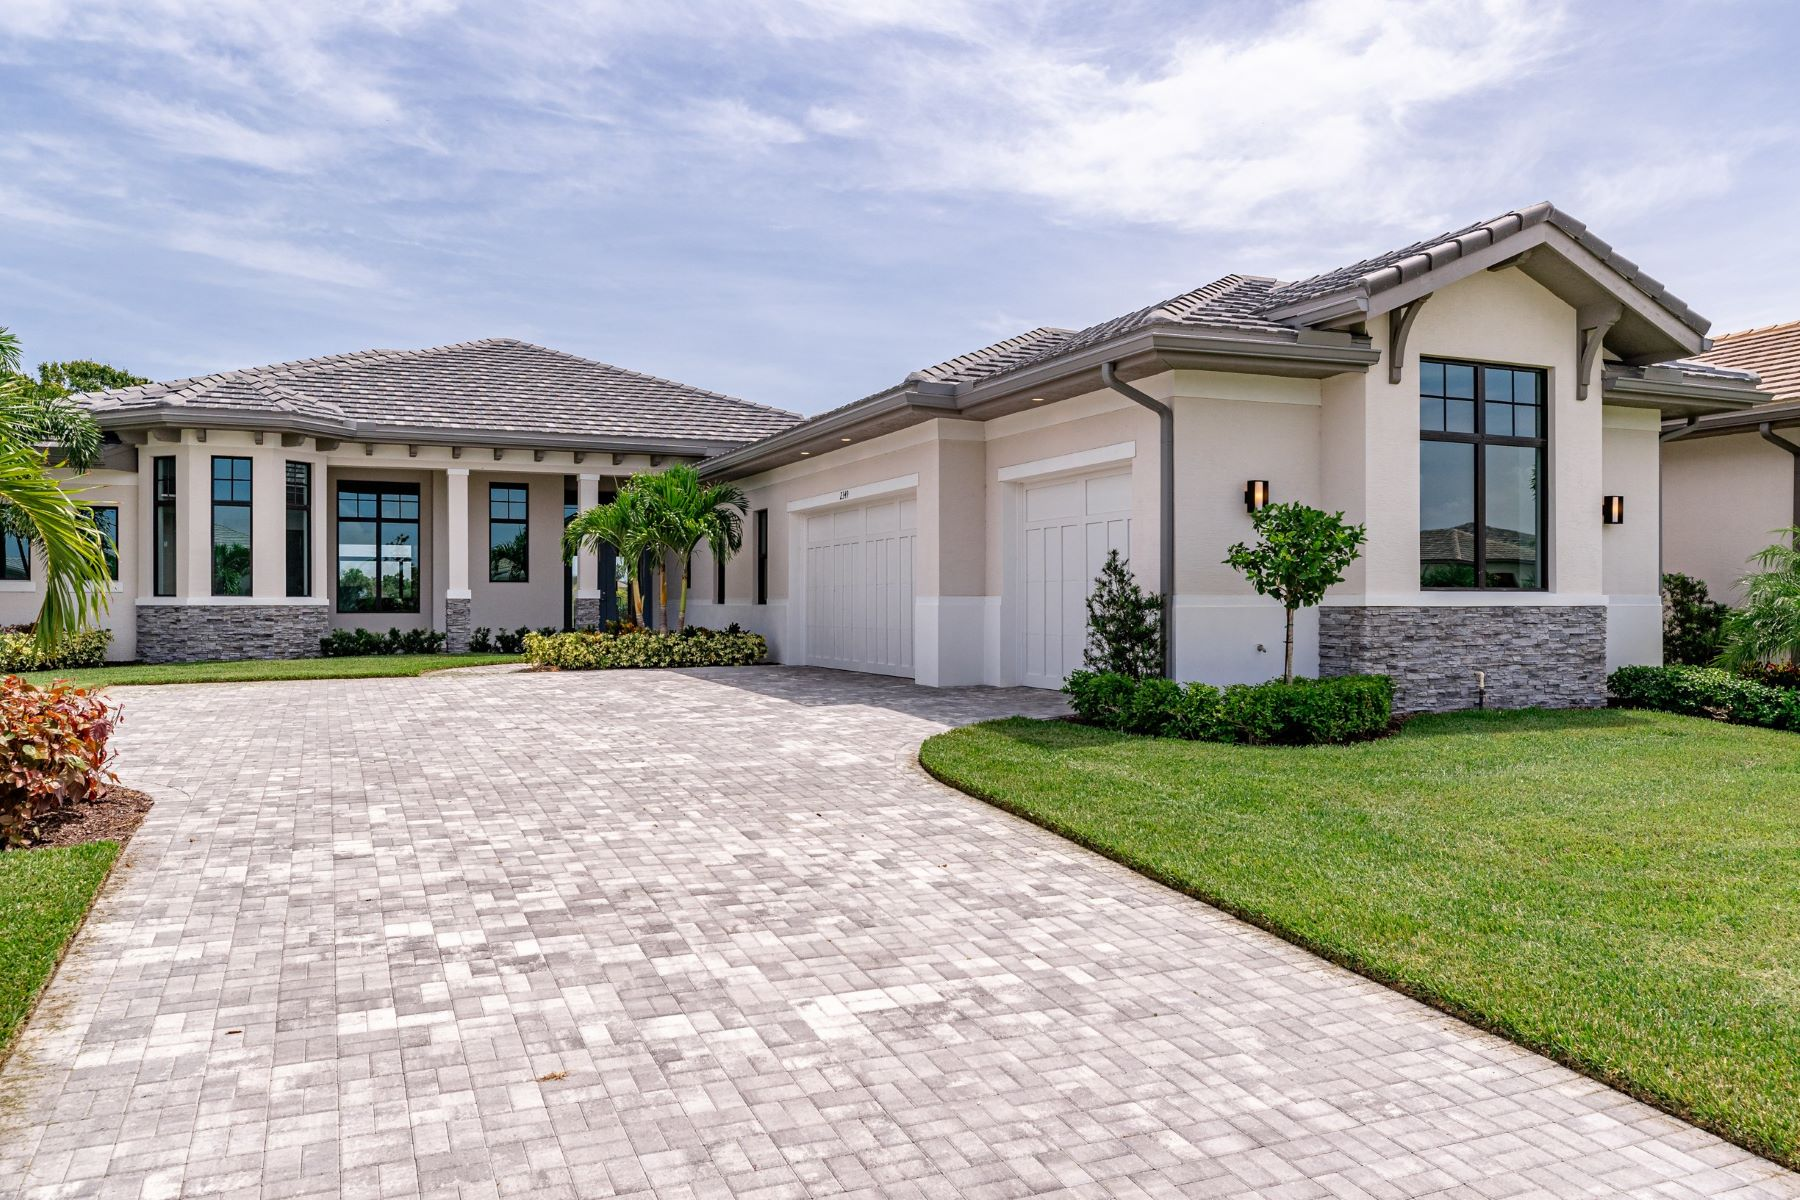 Single Family Homes for Sale at 2349 Grand Harbor Reserve Square Vero Beach, Florida 32967 United States